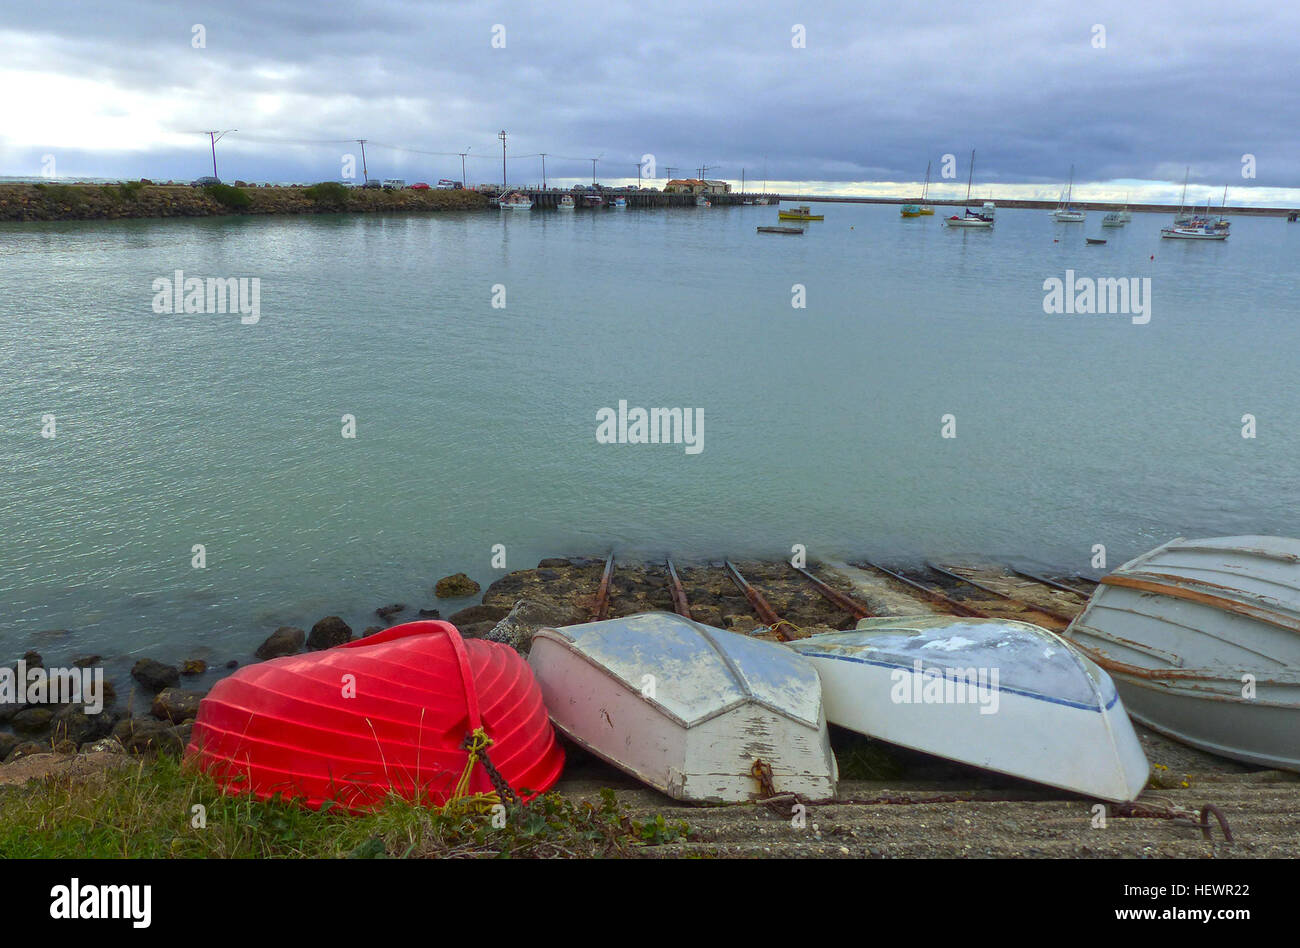 A dinghy (or dingey) is a type of small boat, often carried or towed for use as a ship's boat by a larger vessel. - Stock Image